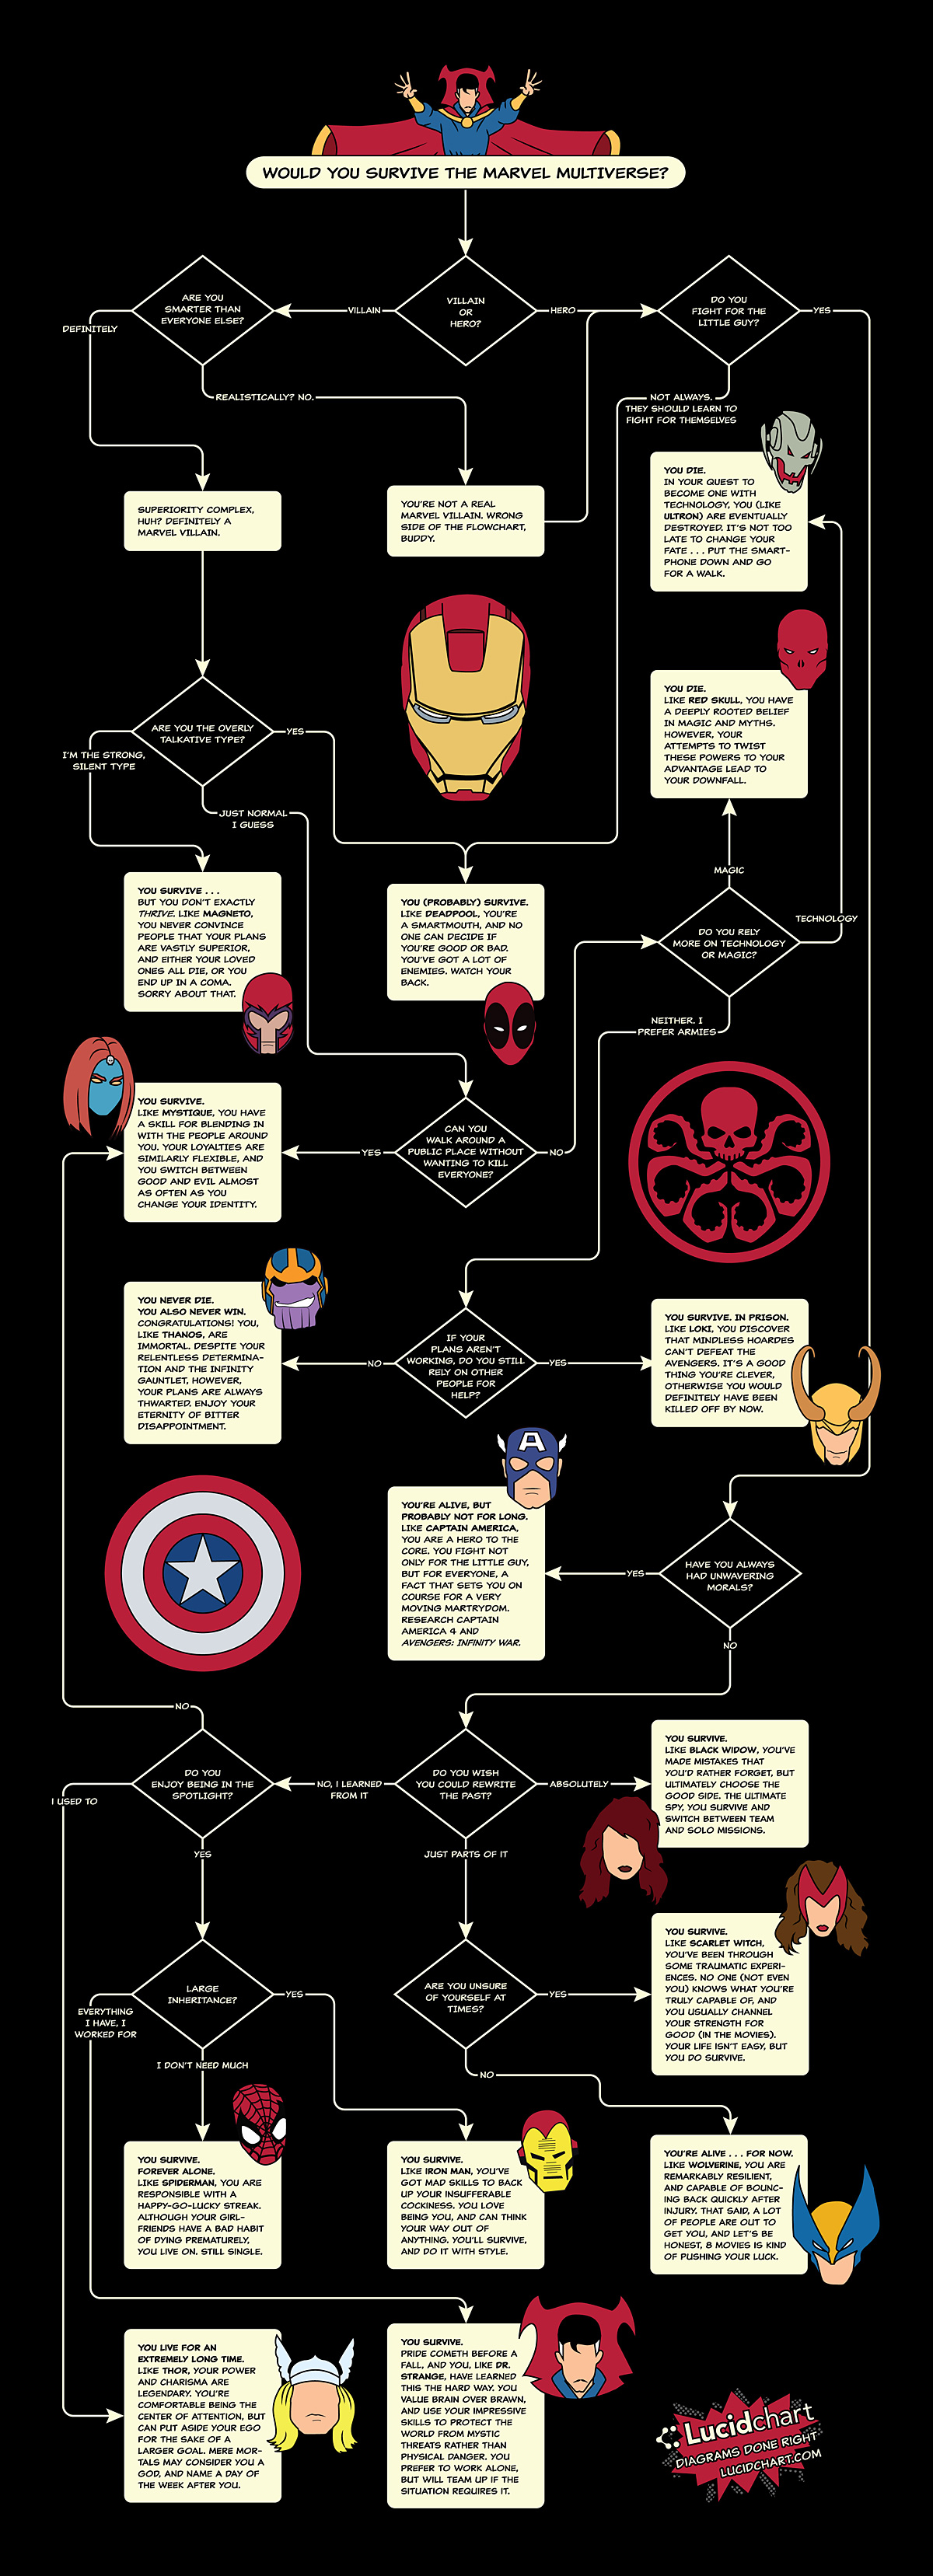 Would You Survive the Marvel Multiverse?